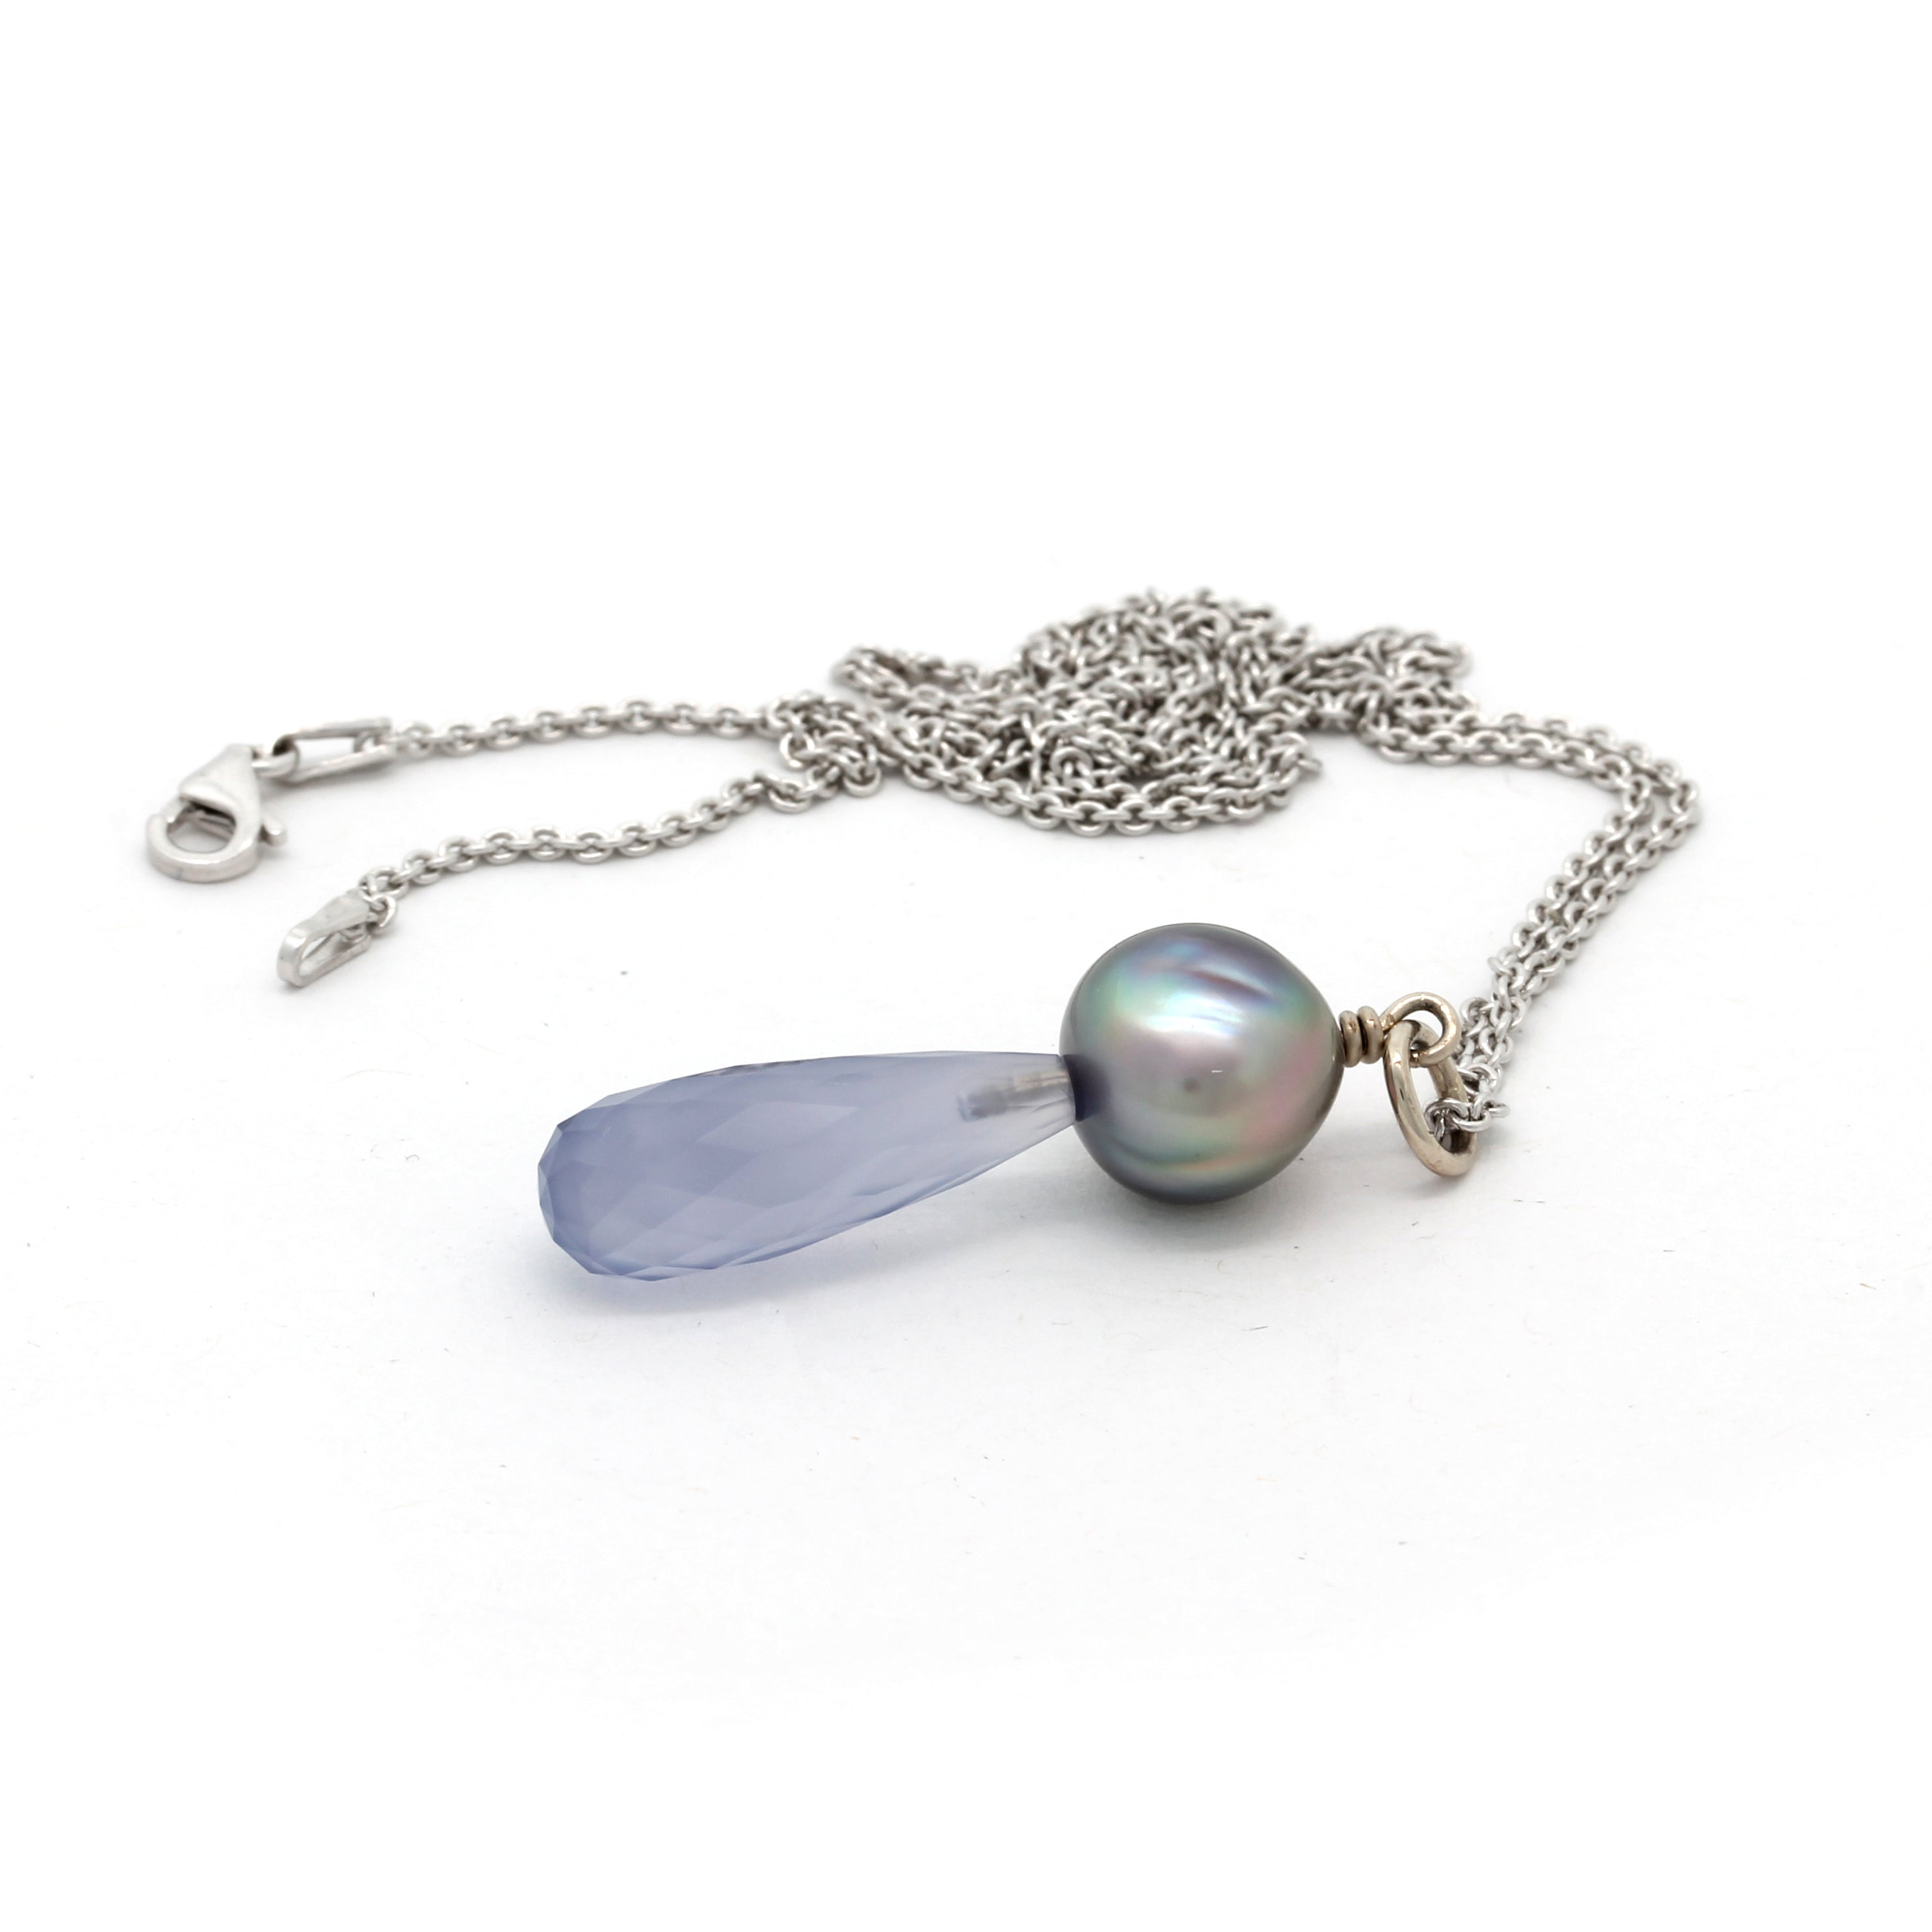 White Gold Pendant with Cortez Pearl and Blue Caledonite